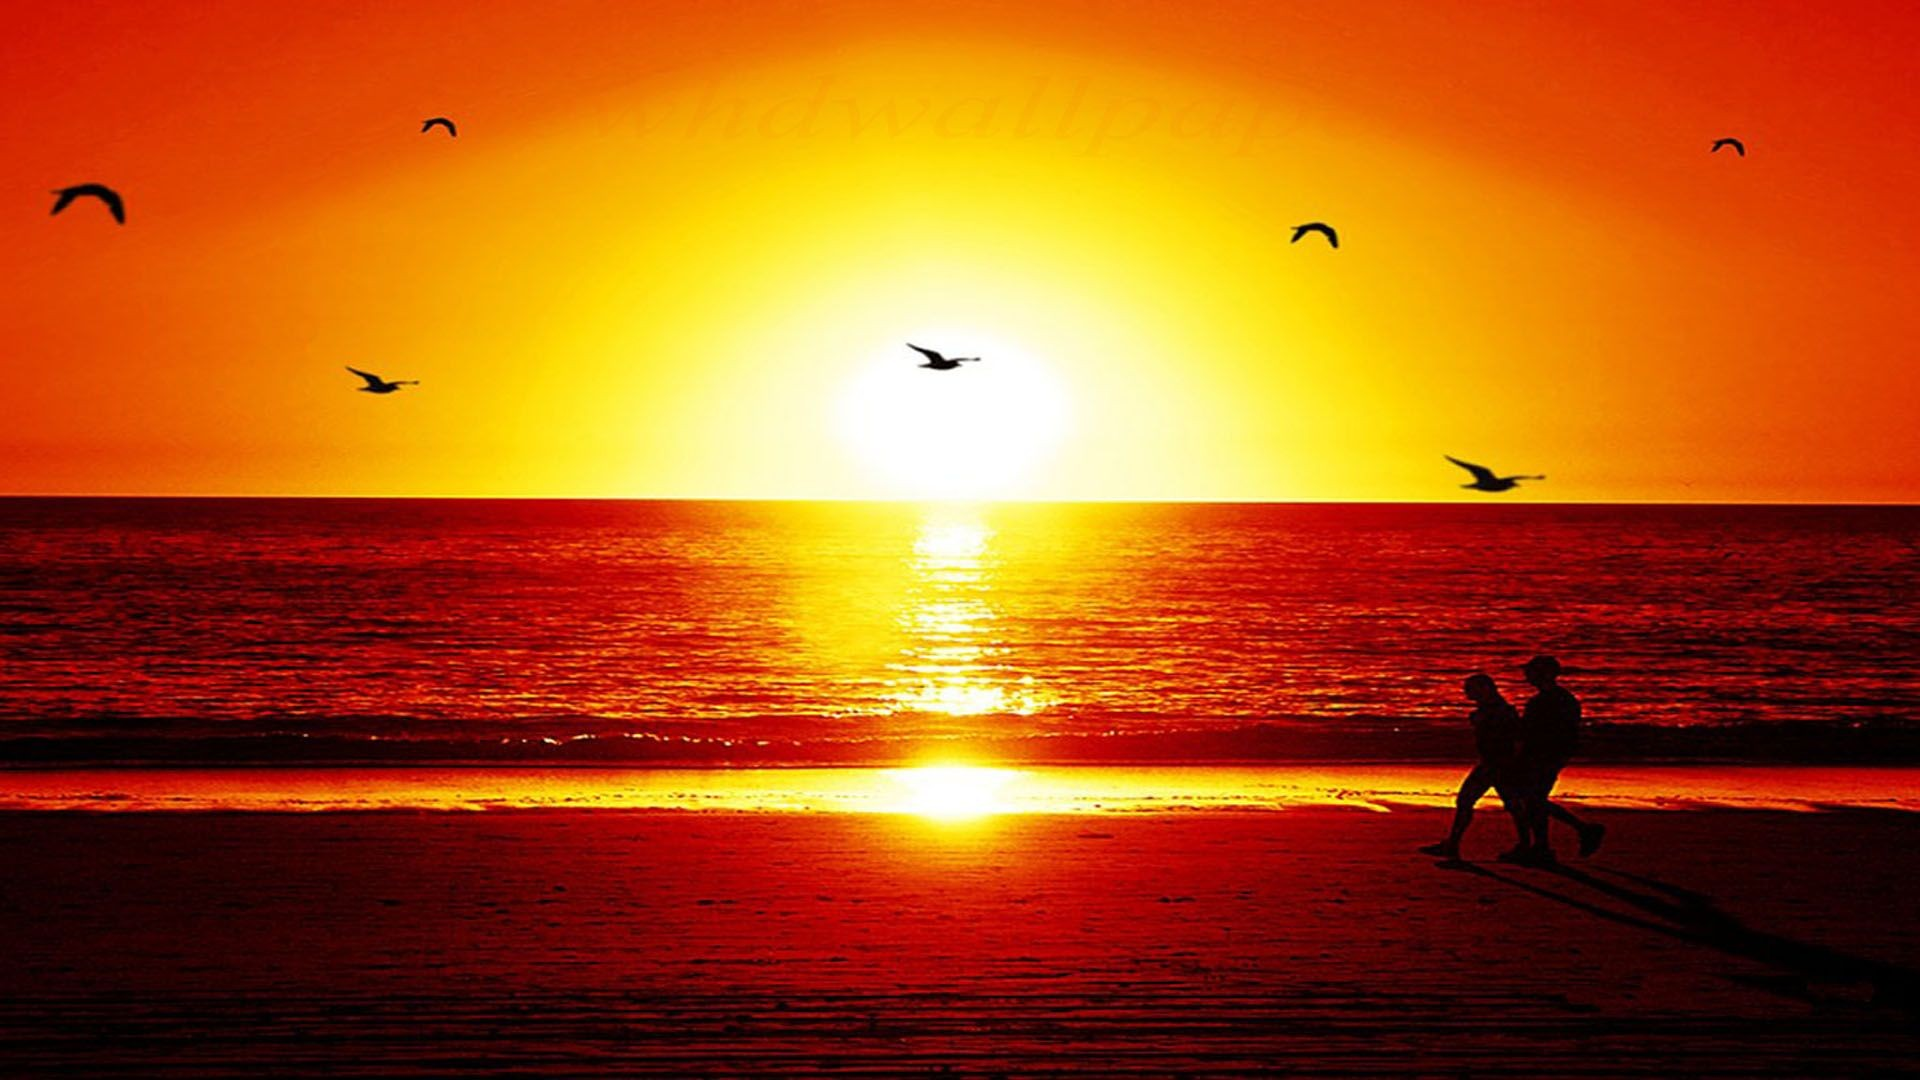 Orange Sunset Wallpapers Wallpaper Studio  Tens of thousands